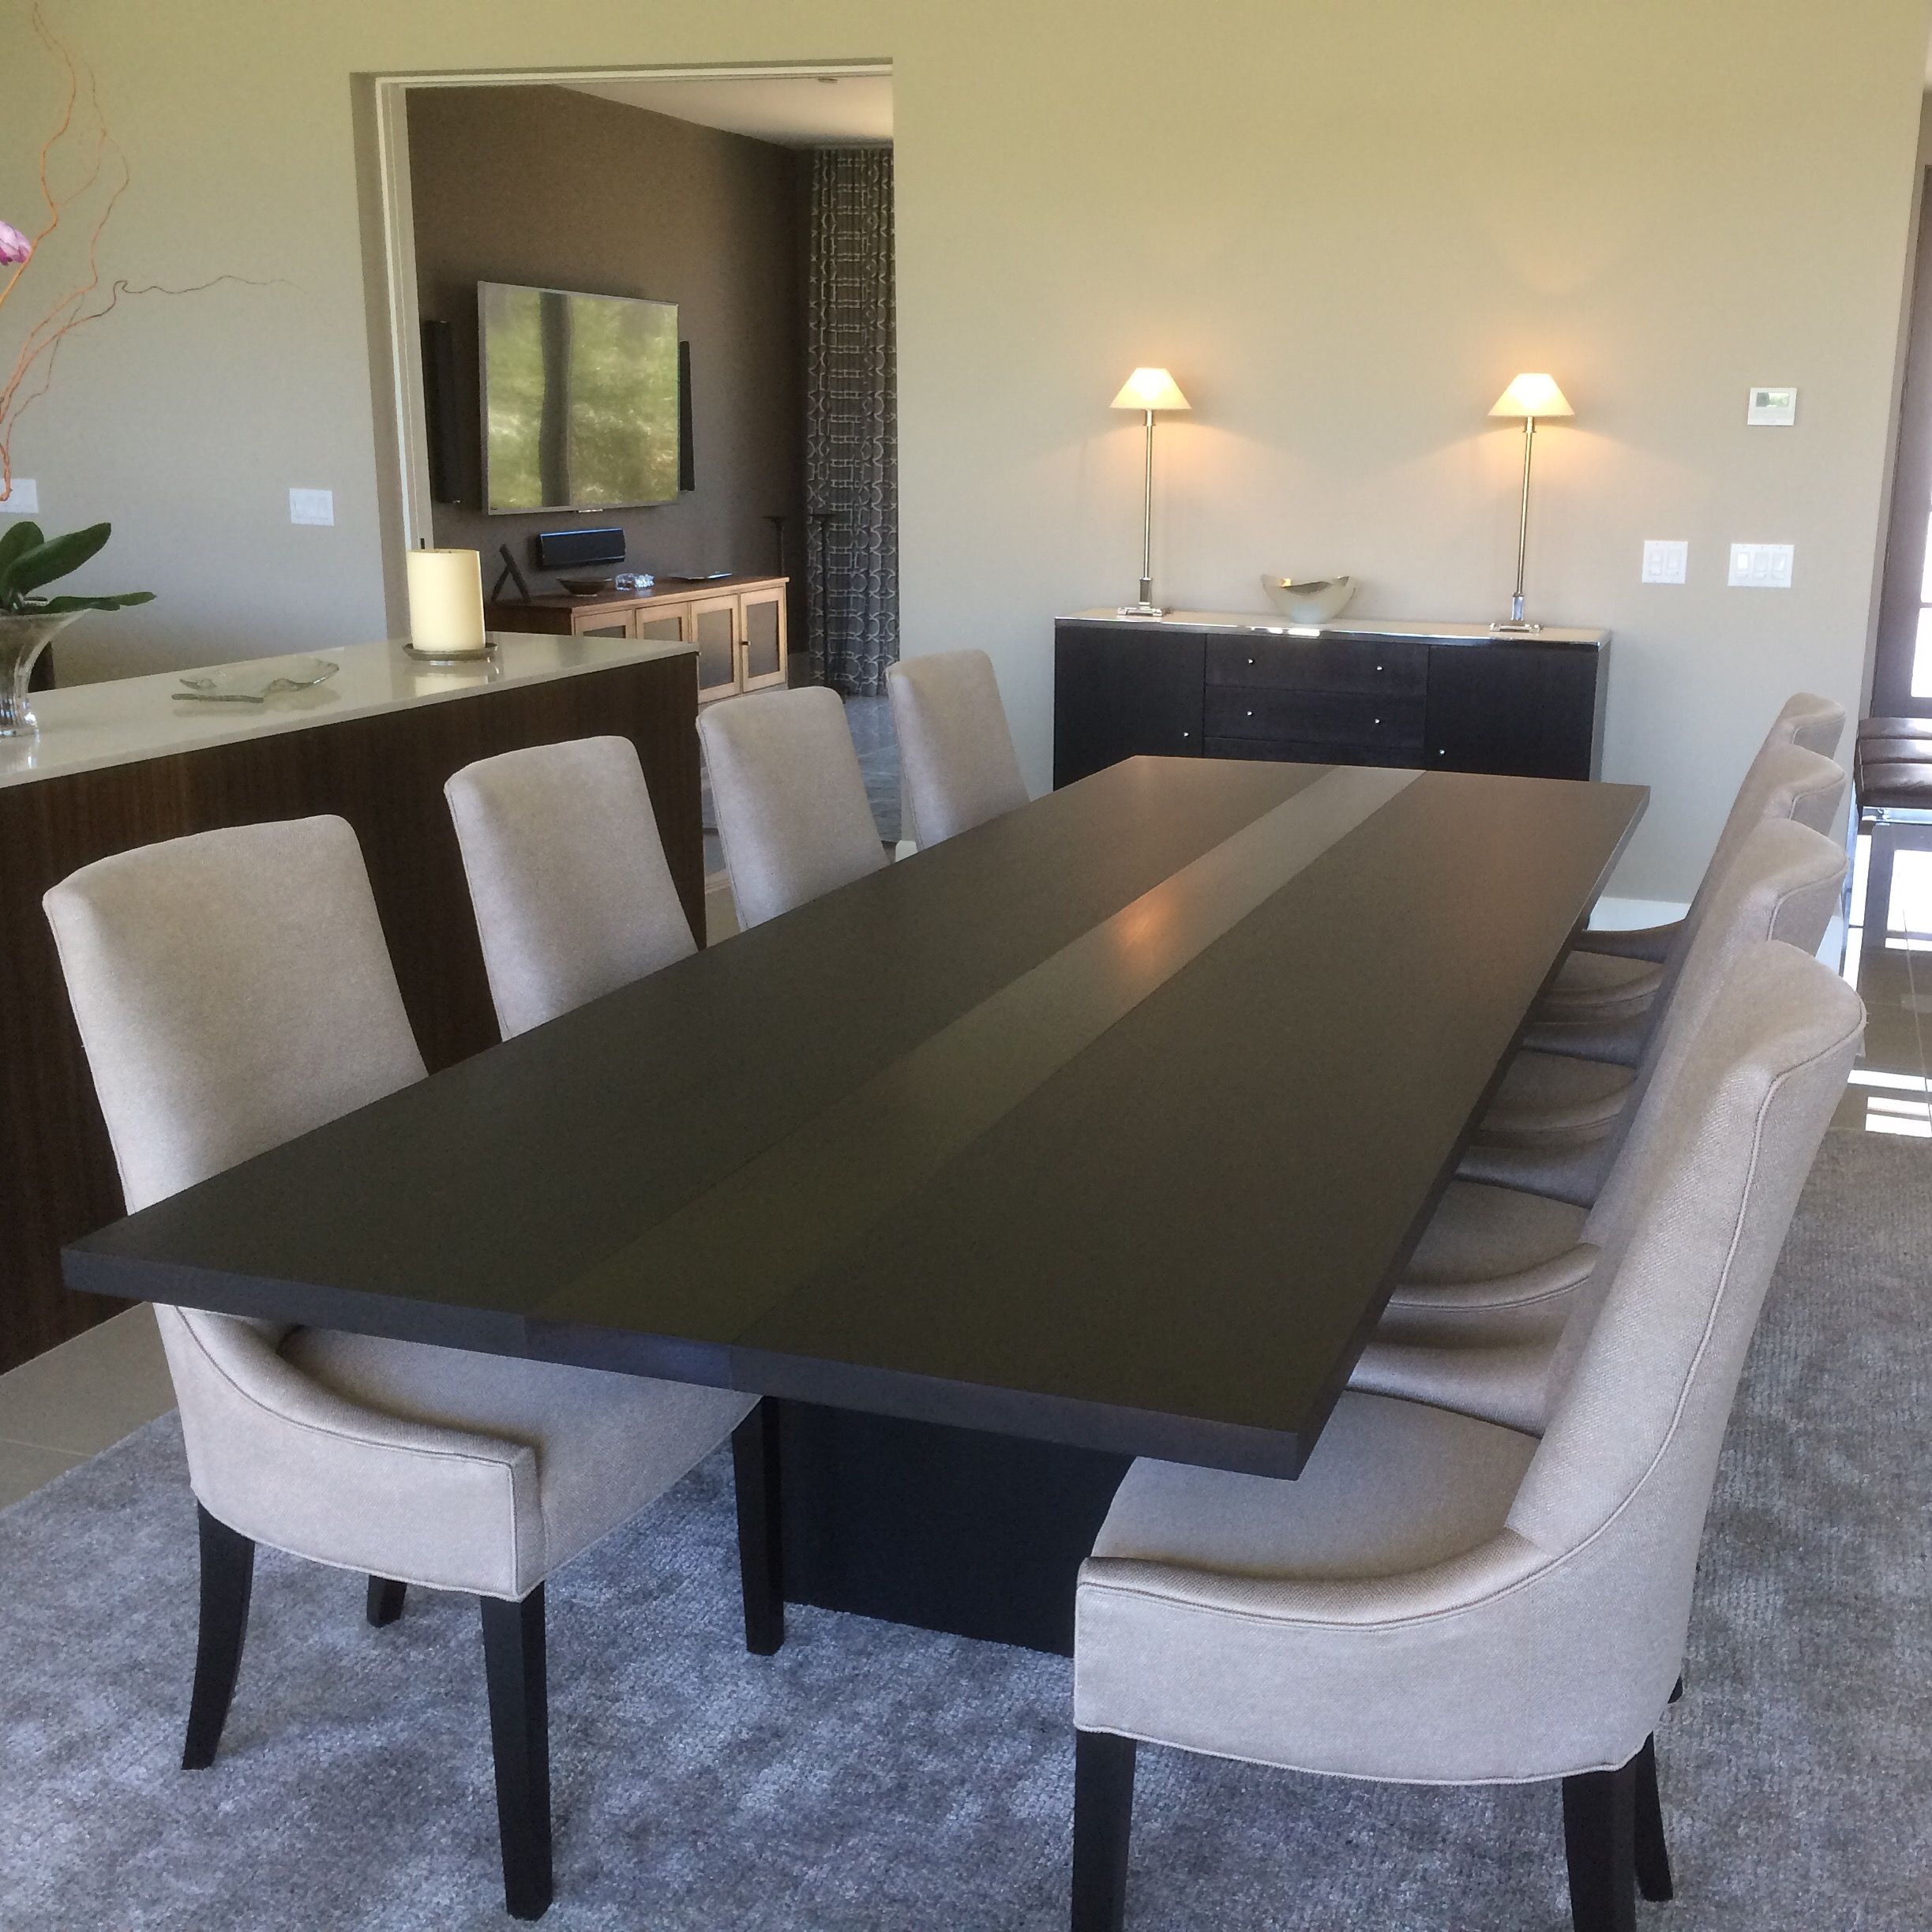 Handmade modern dining table by bedre woodworking for Contemporary dining furniture